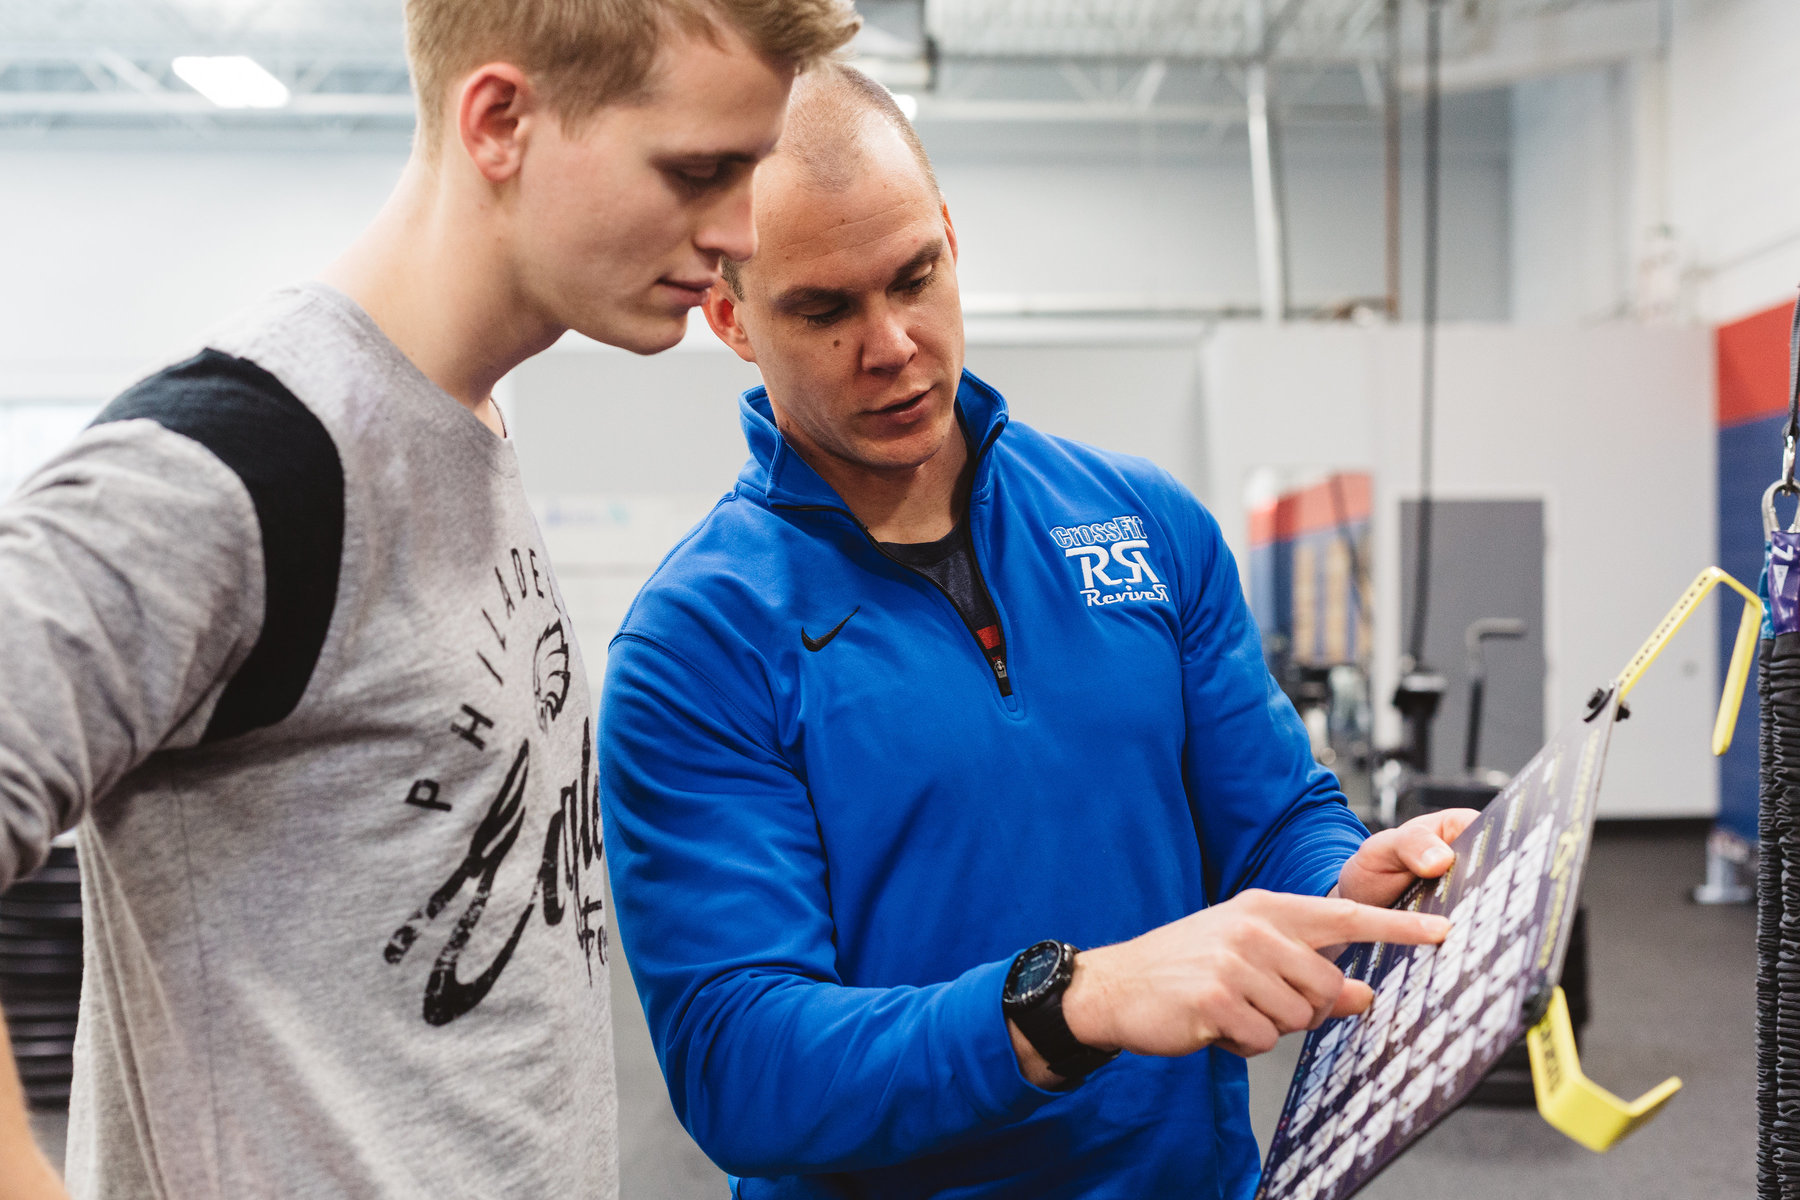 At CrossFit Reviver, you will find a coaching staff who believes in building trusting relationships through focused instruction, intelligent programming, and conversations. We believe that fitness is a lifelong journey that encompasses training, nutrition, stress management, and more. -